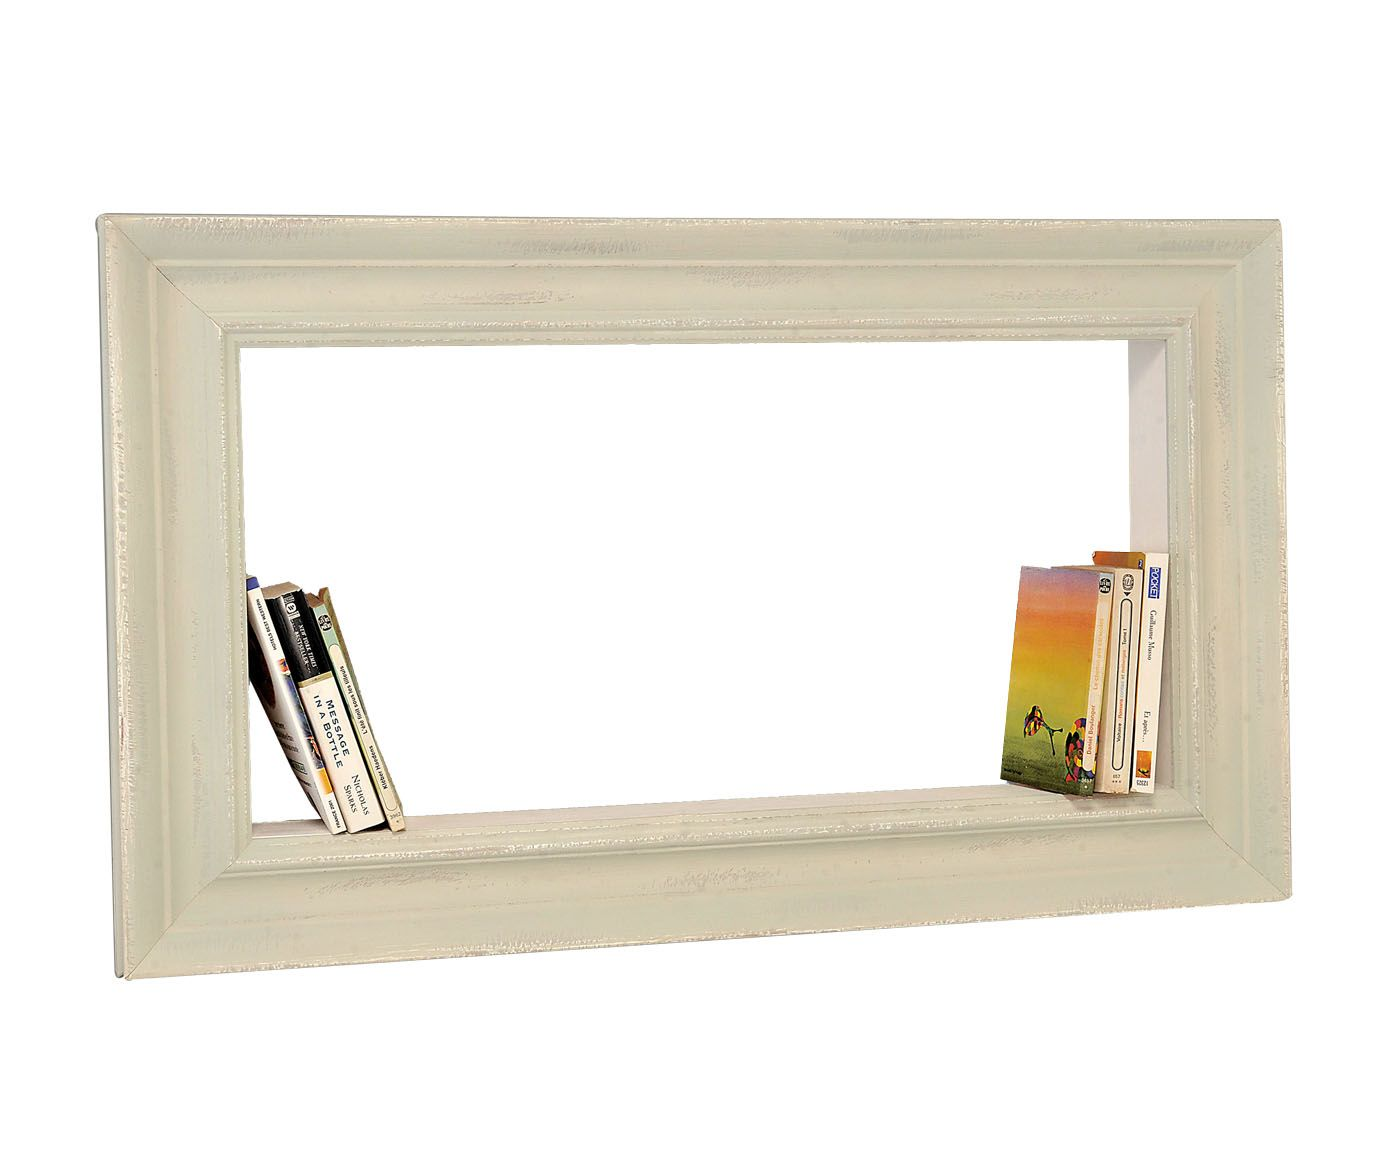 do a series of frames w/ shadow box built-ins to support books.